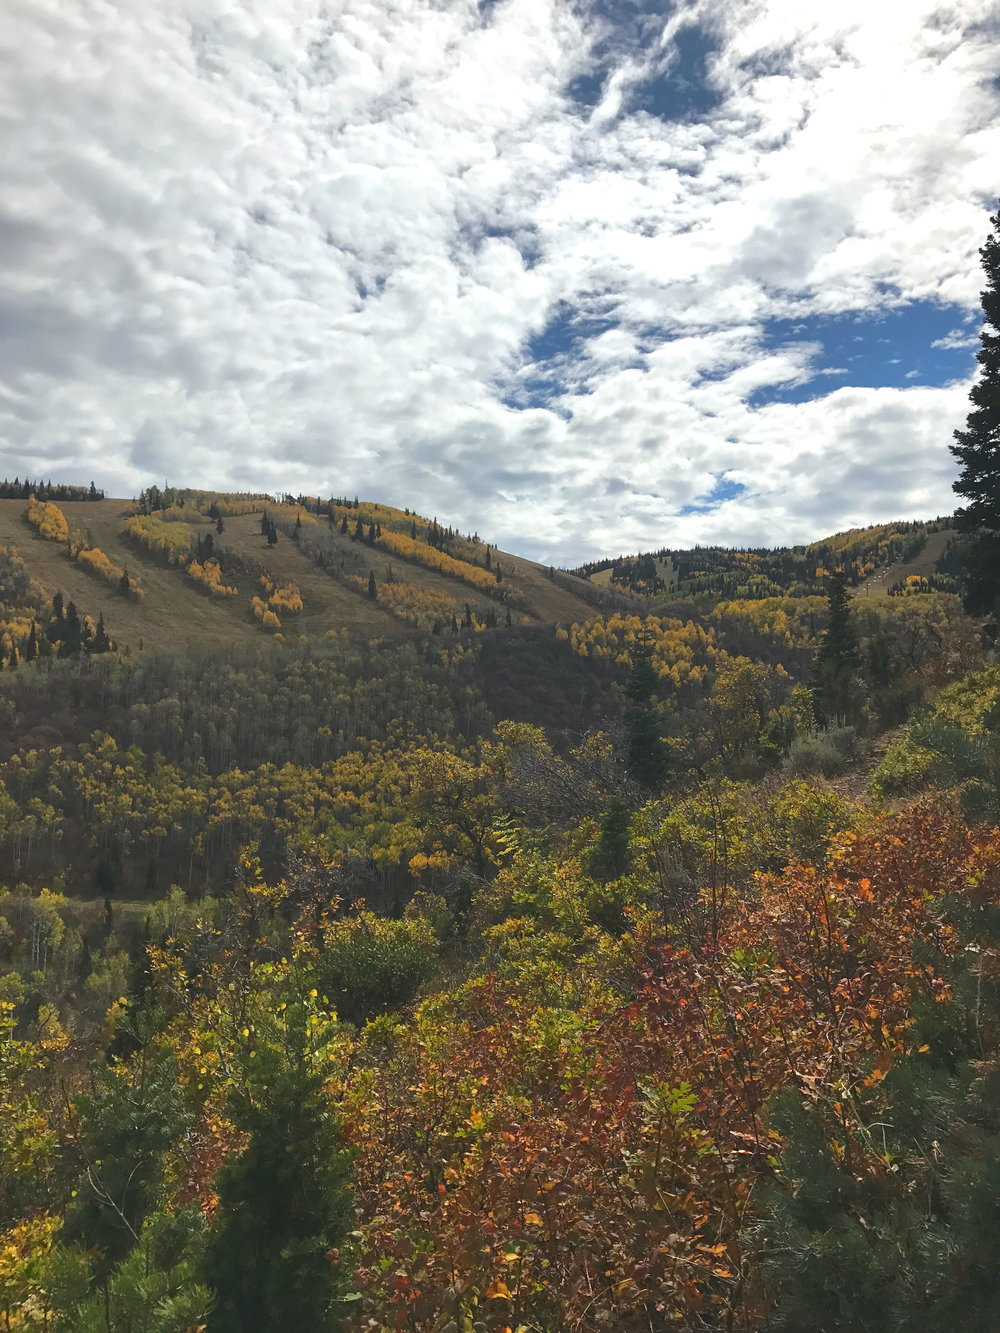 Fall foliage in Park City, Utah